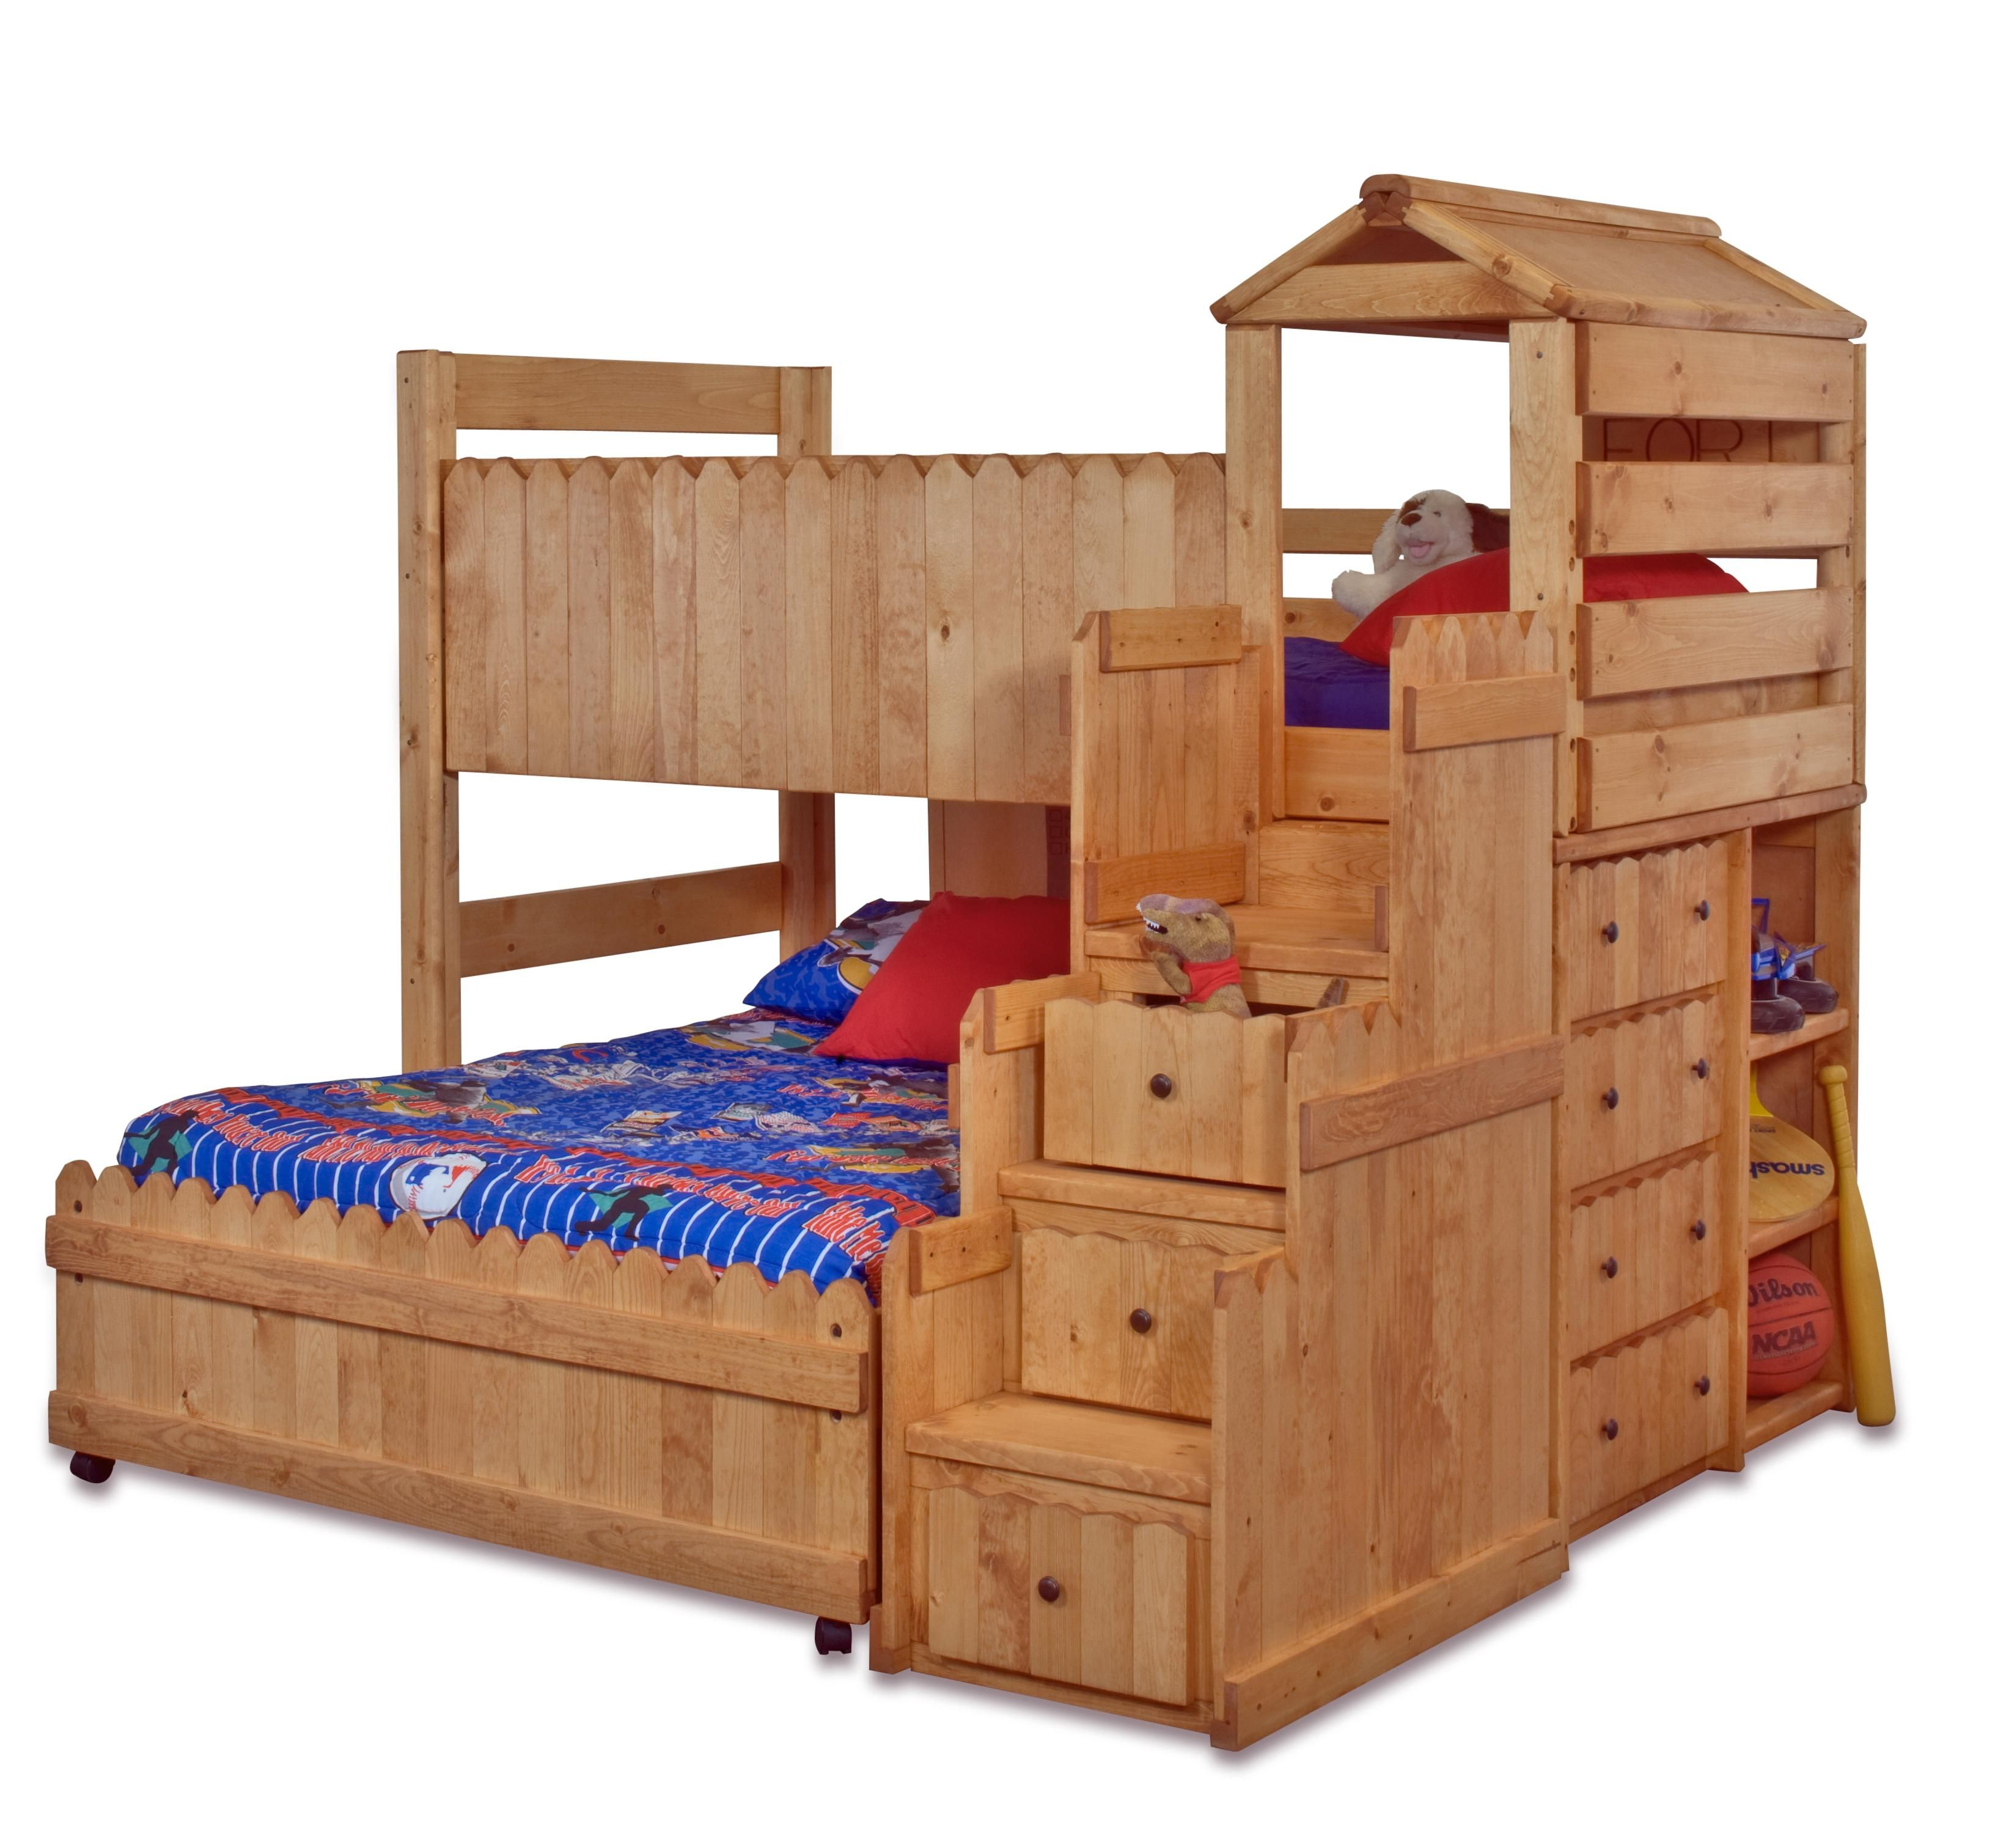 Baby amp kids kids furniture kids beds amp bedroom sets bunk beds - Trendwood Furniture The Fort Twin Full Complete Loft Fort Bed With Stairway